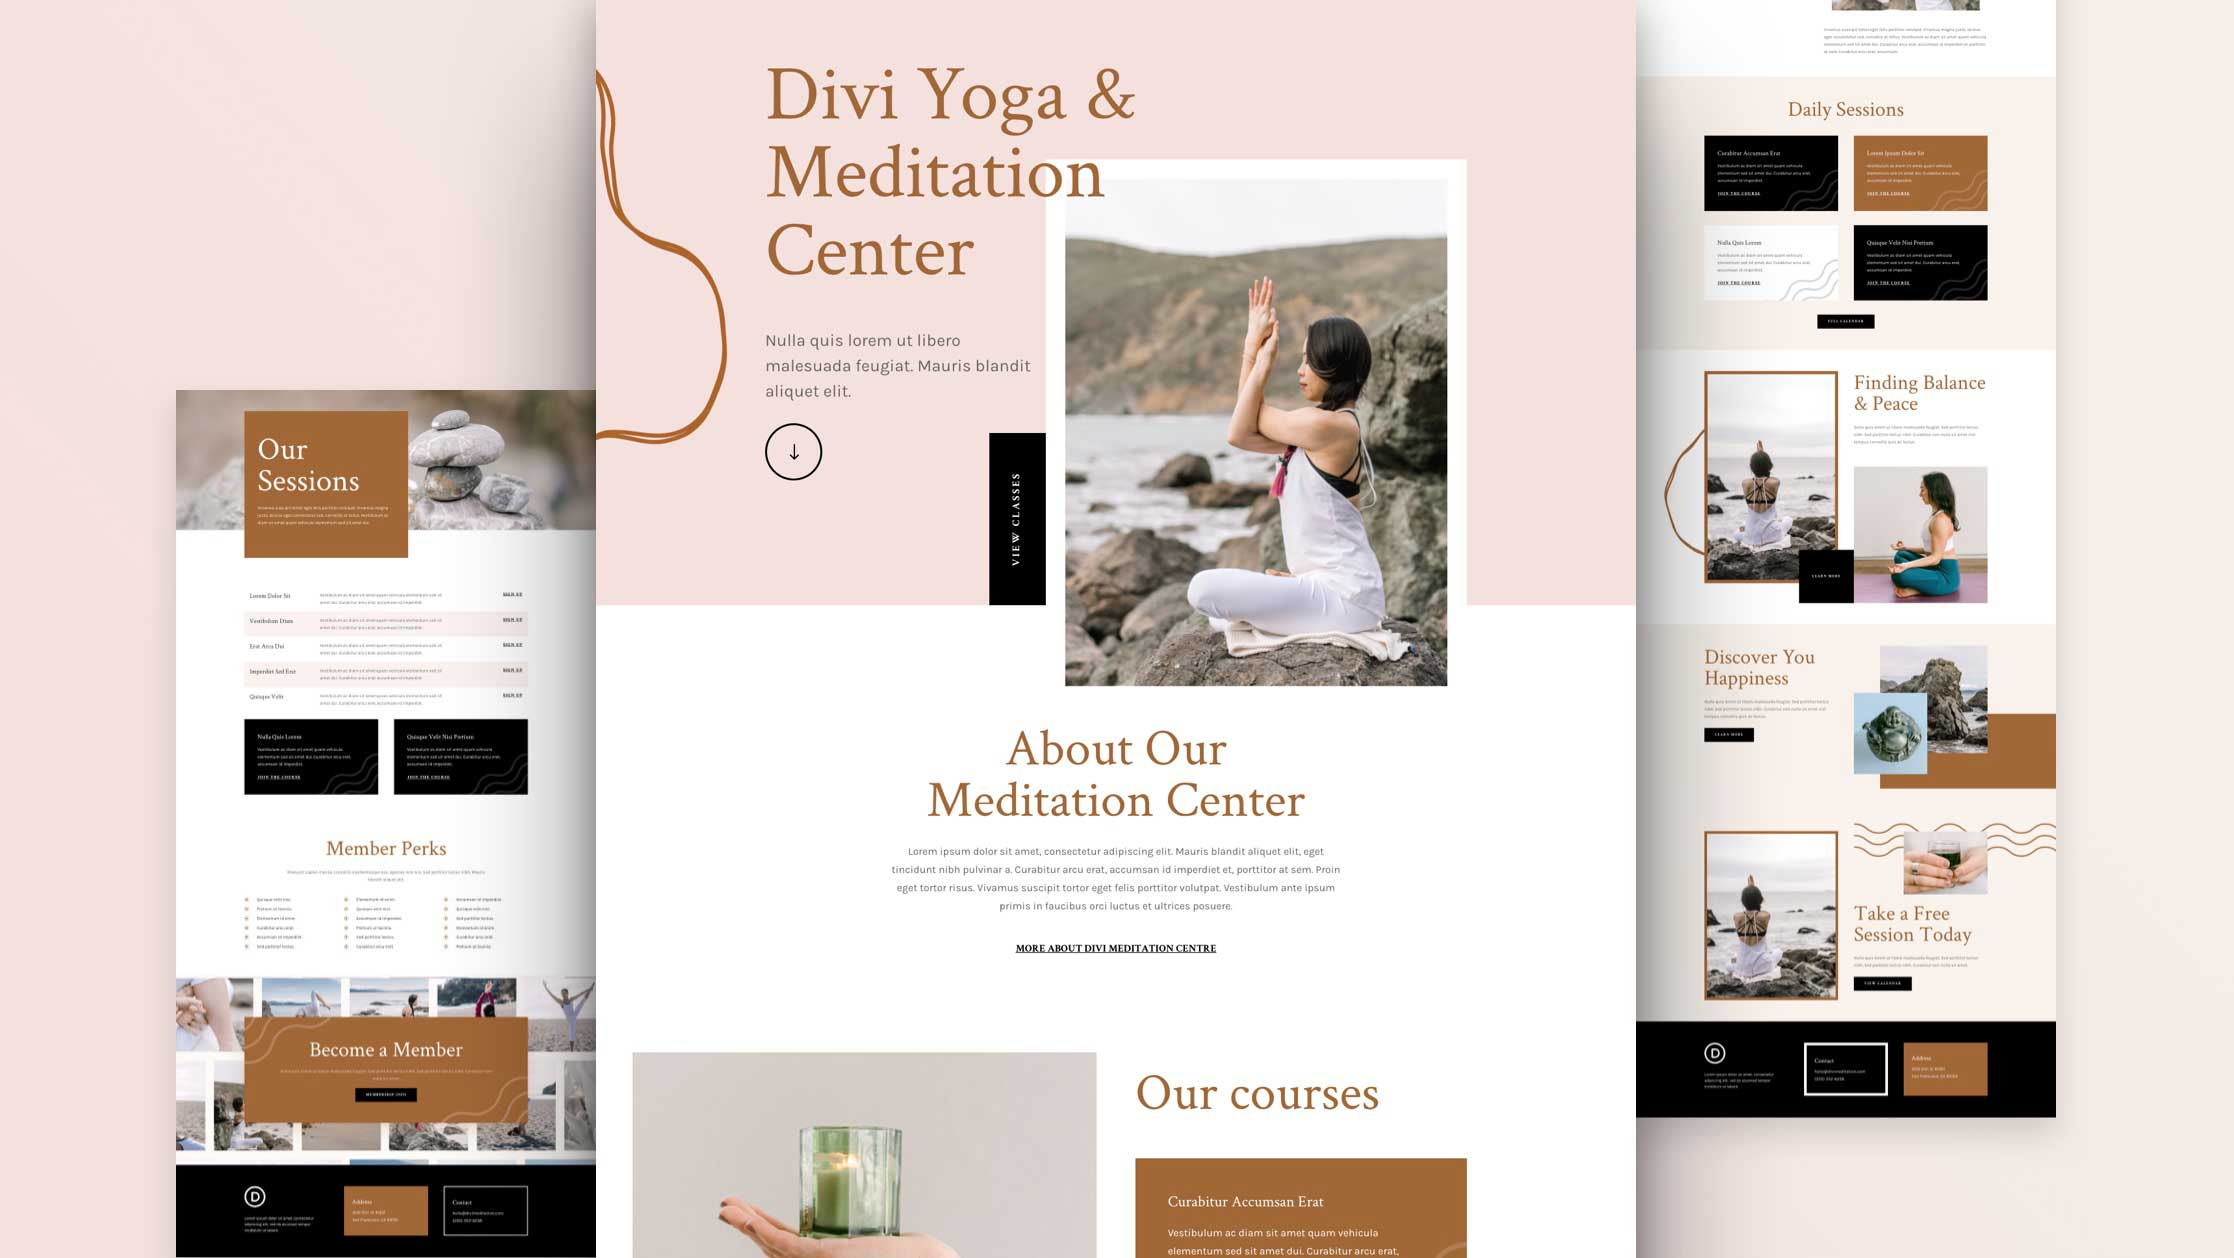 Get a FREE Meditation Center Layout Pack for Divi